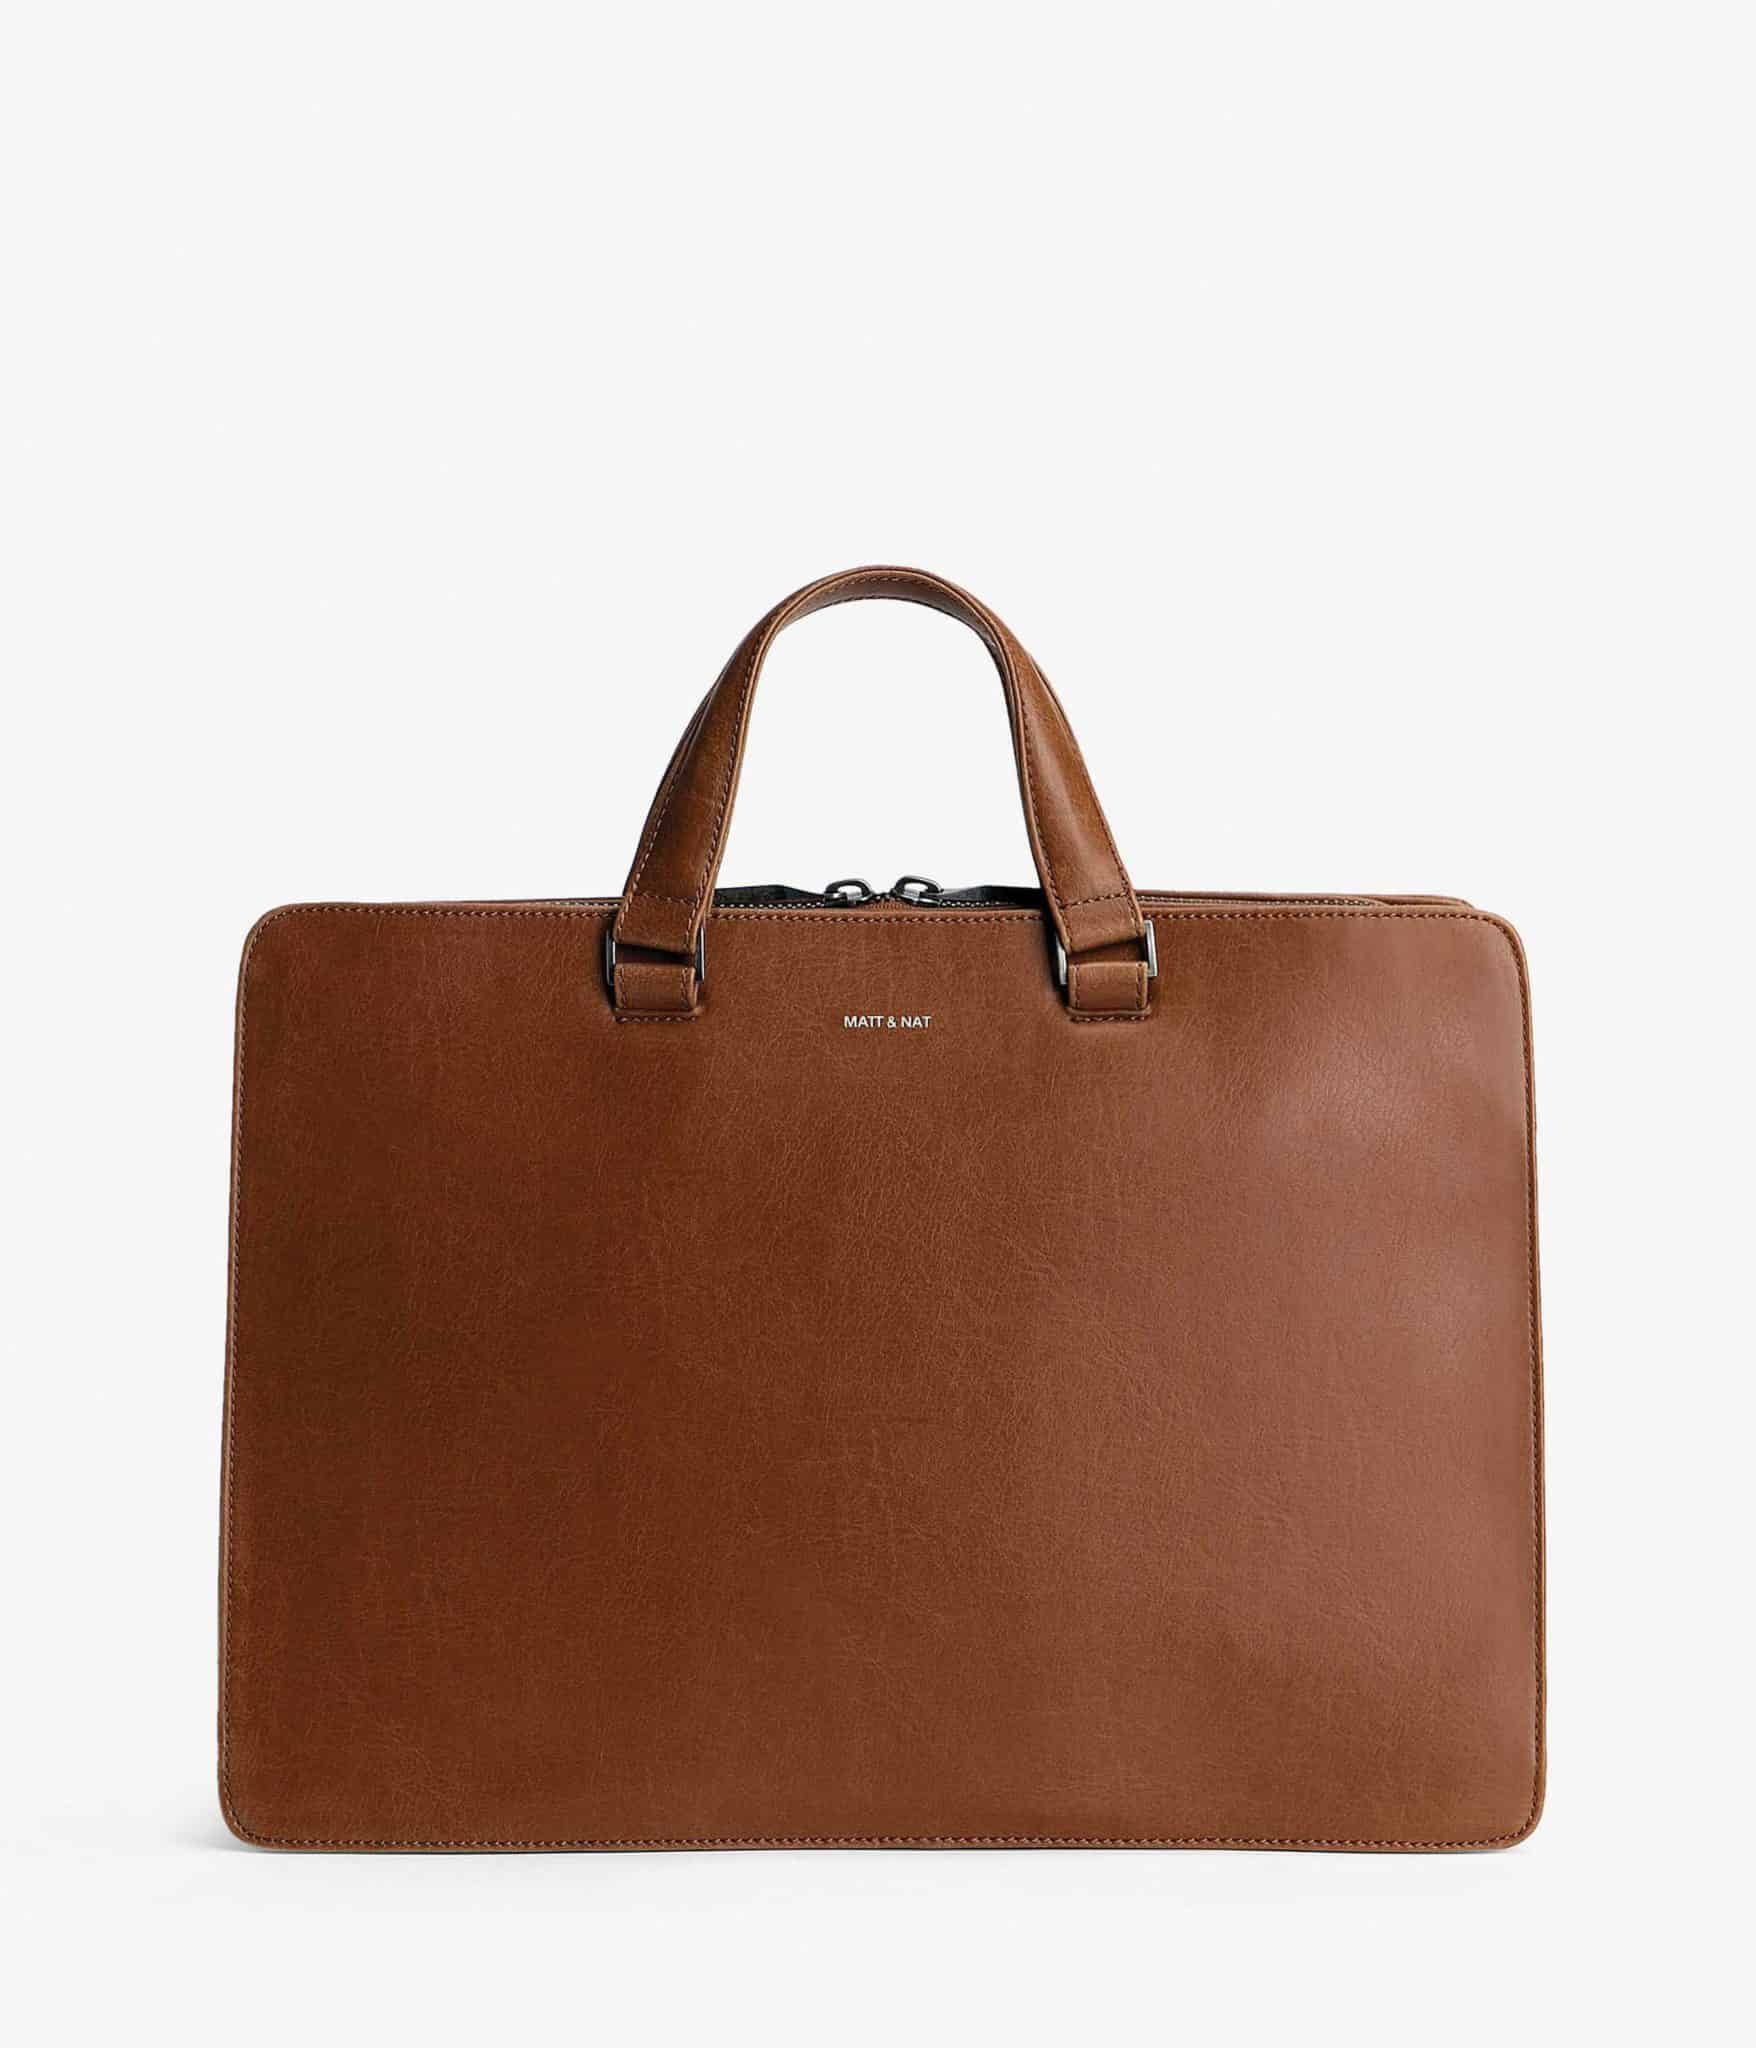 39a7df4f7dcc 10 Vegan Briefcase Brands You ll Be Proud To Take To Work - Eluxe ...